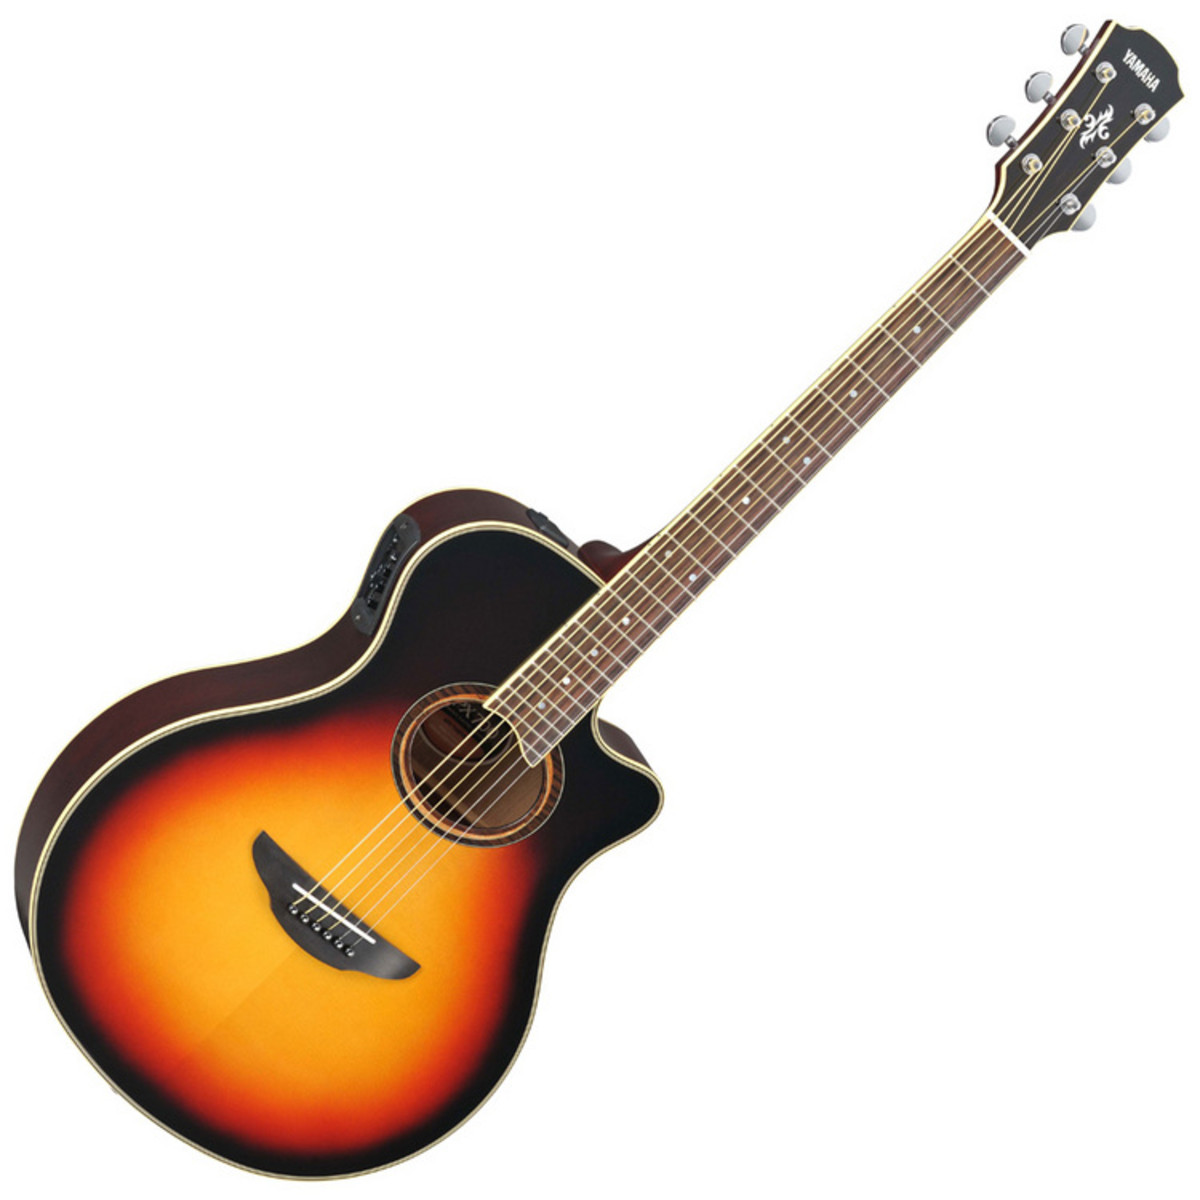 yamaha apx700ii guitare electro acoustique vintage. Black Bedroom Furniture Sets. Home Design Ideas